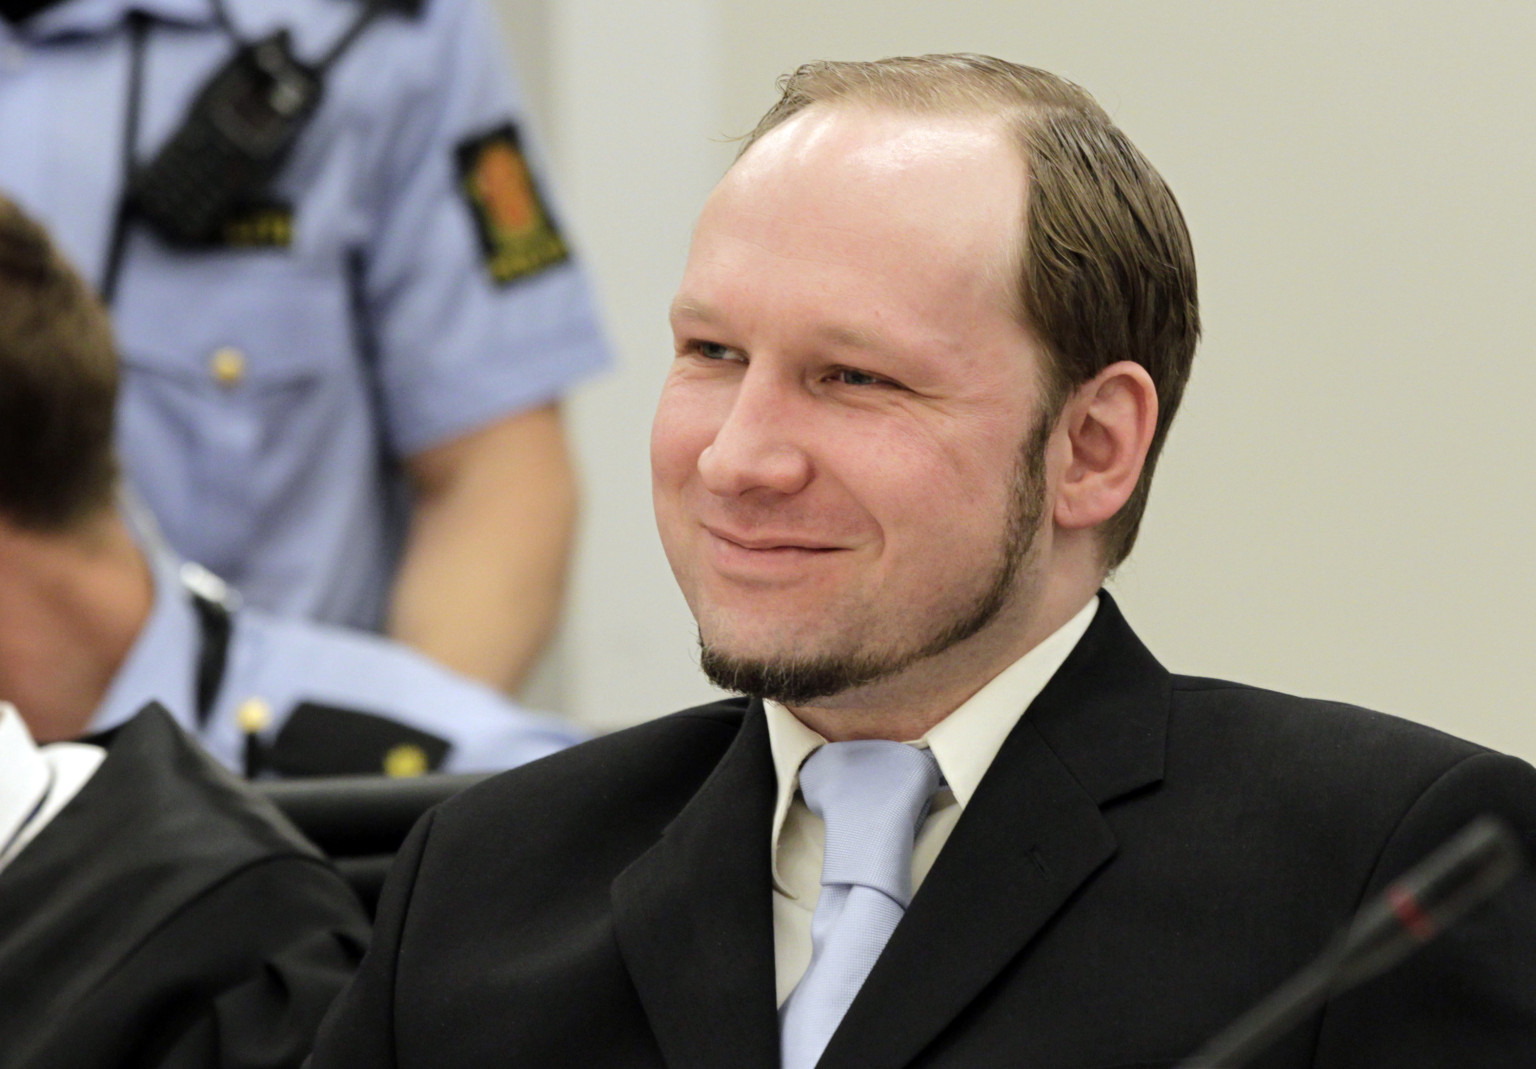 Mass killer Anders Behring Breivik smile